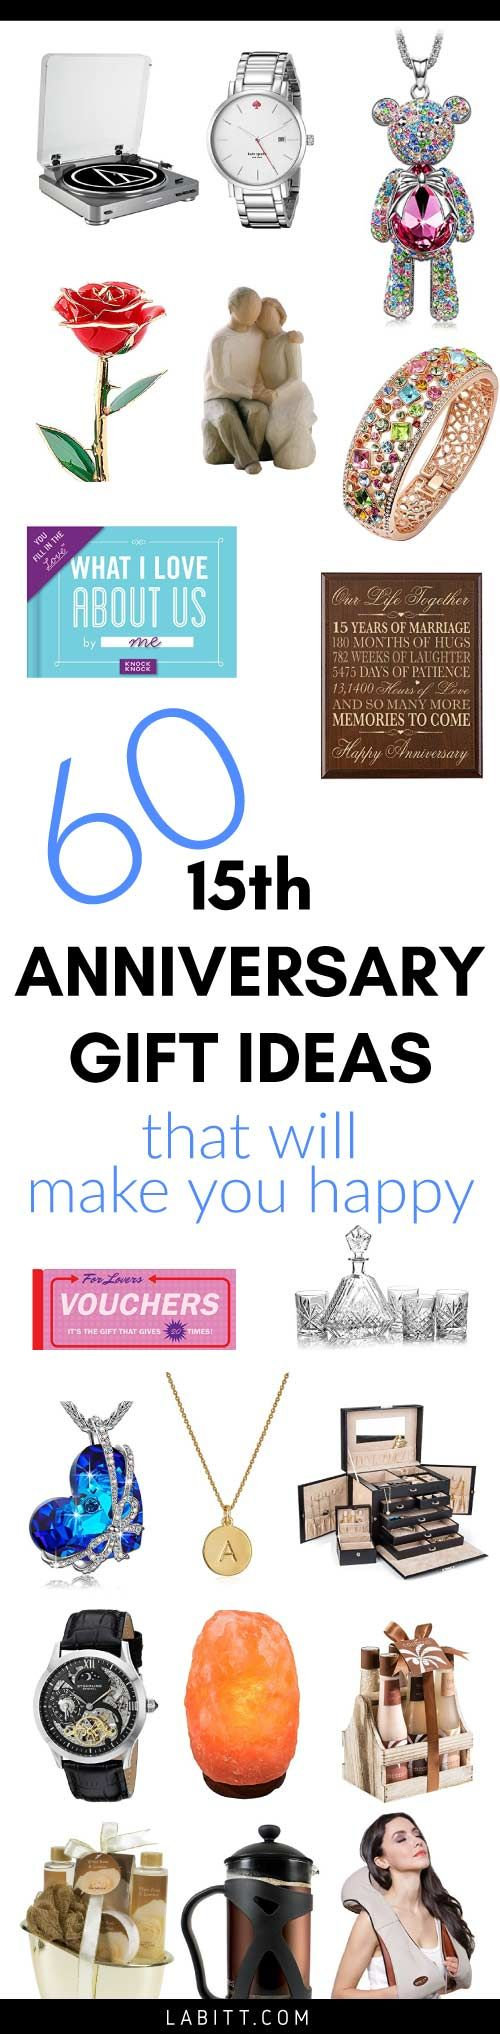 155 best images about anniversary gift ideas on pinterest for 15th wedding anniversary gifts for him